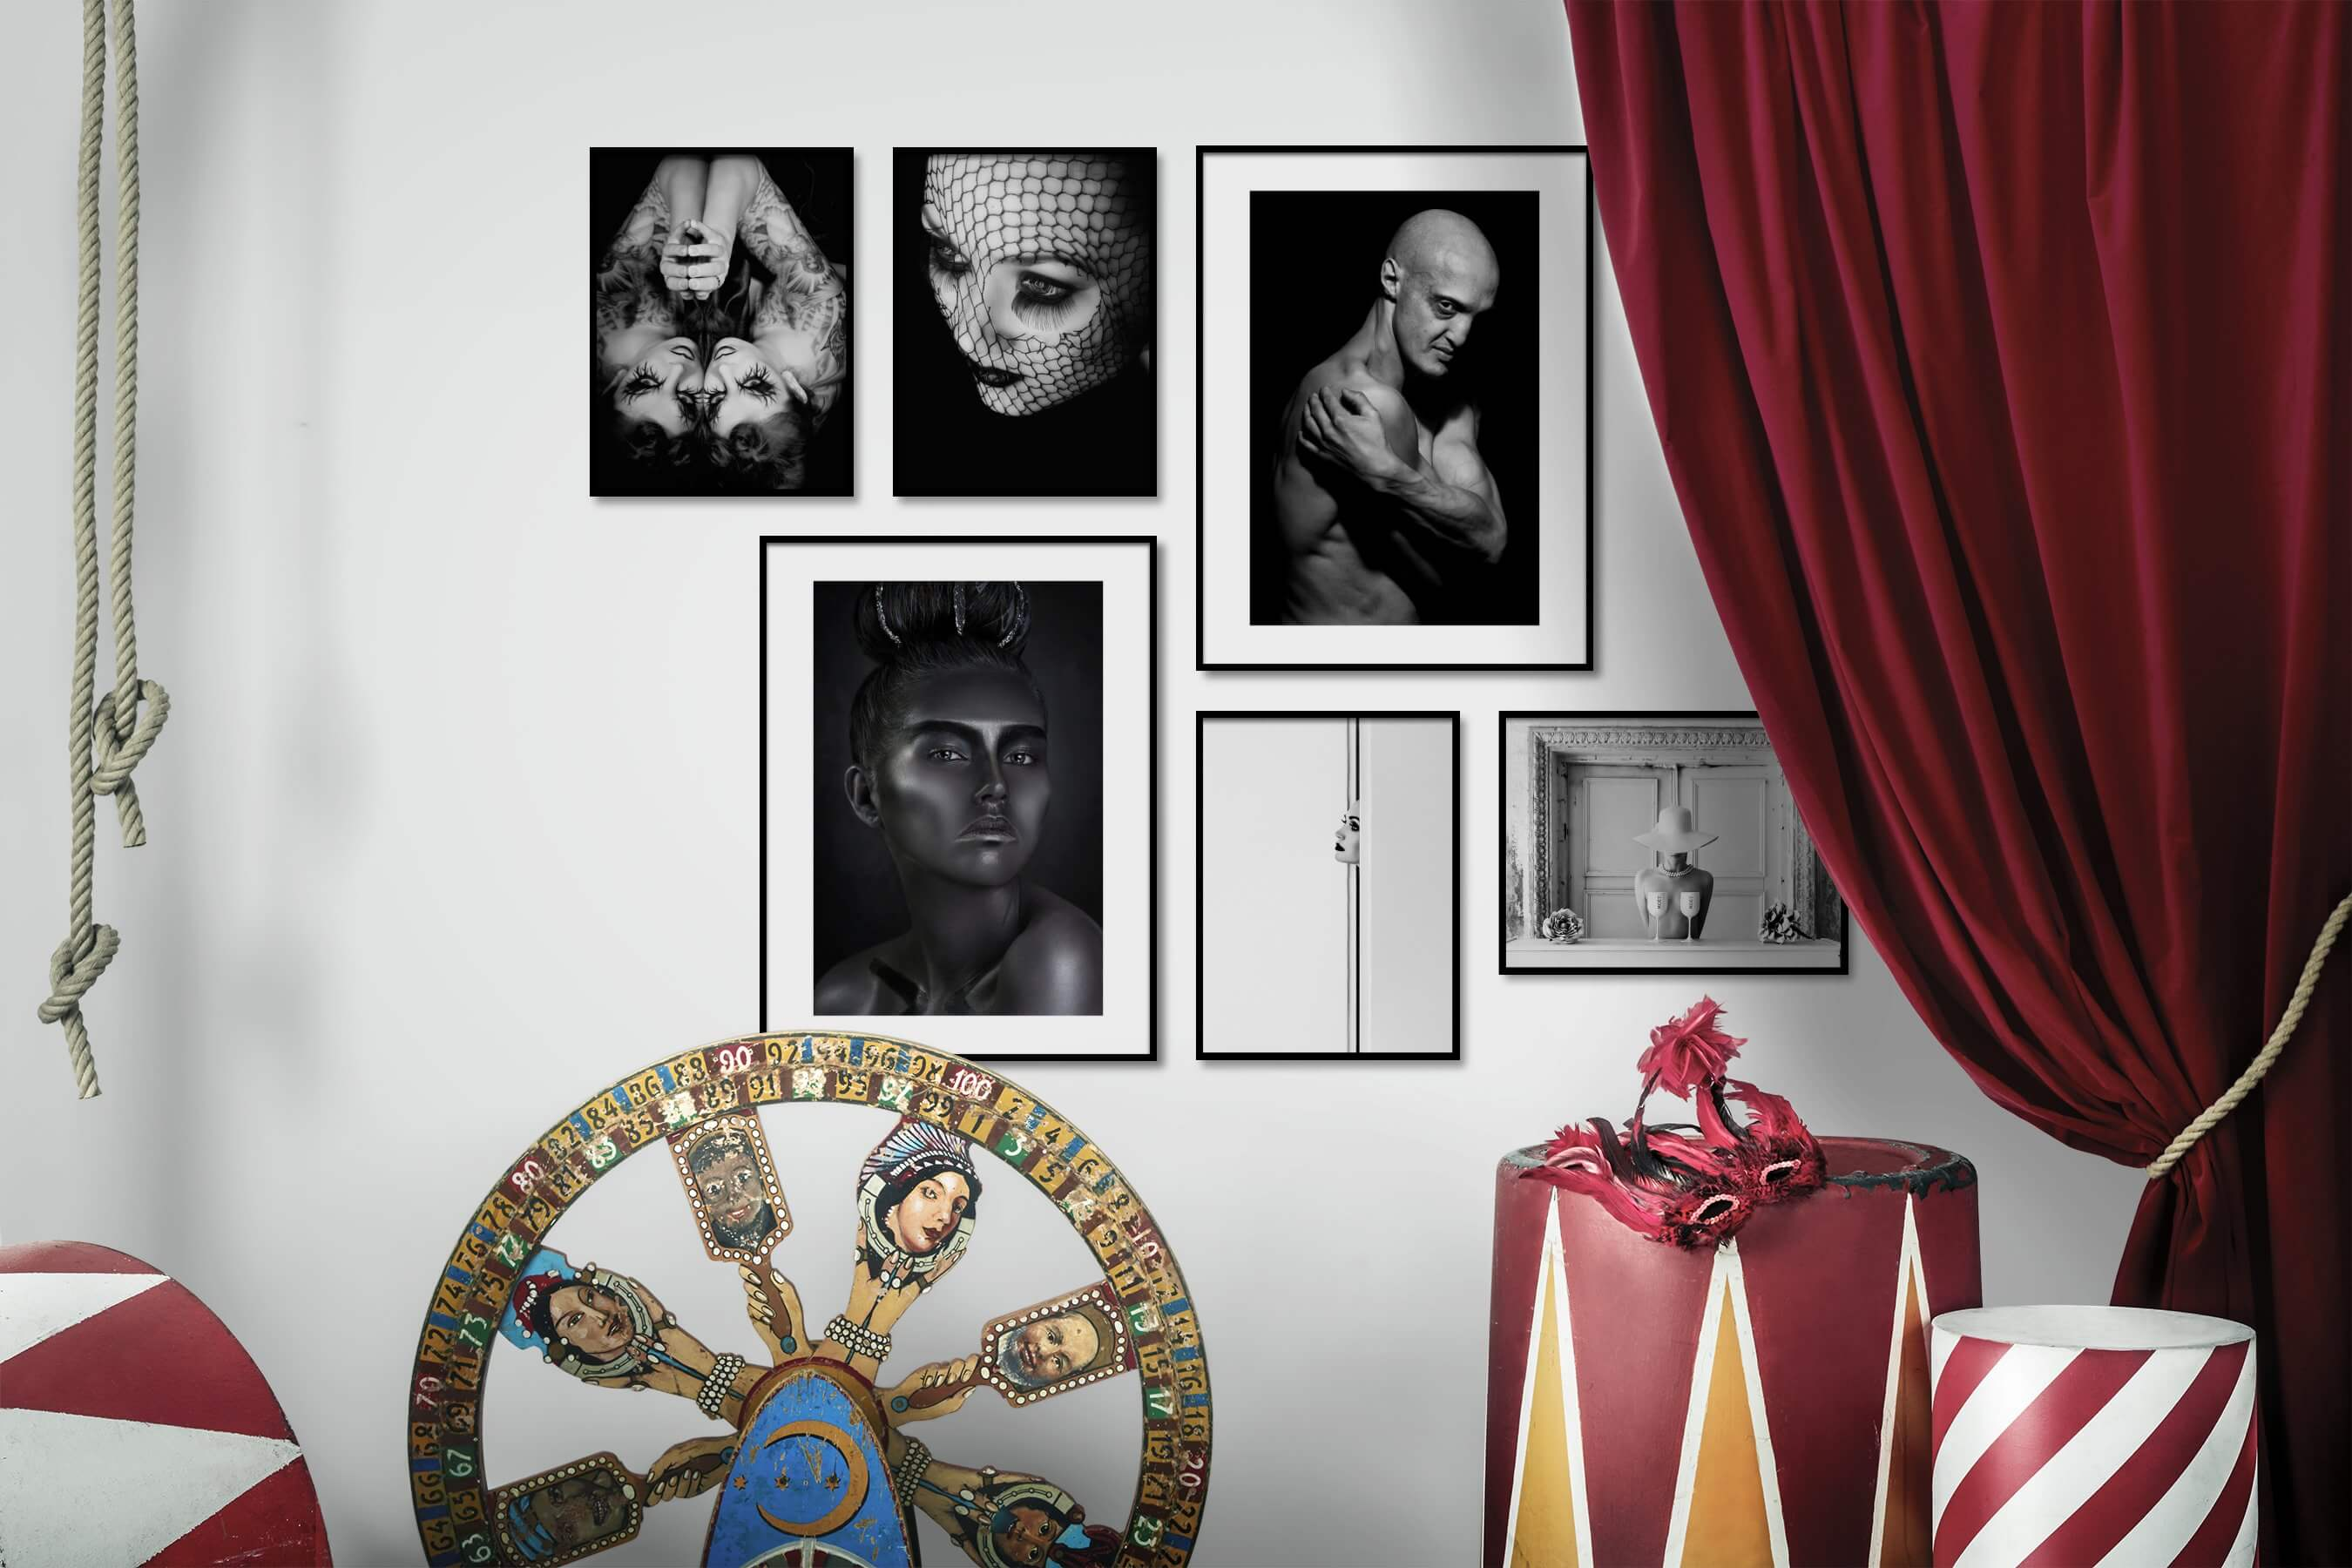 Gallery wall idea with six framed pictures arranged on a wall depicting Fashion & Beauty, Black & White, Dark Tones, For the Moderate, Bright Tones, For the Minimalist, and Artsy